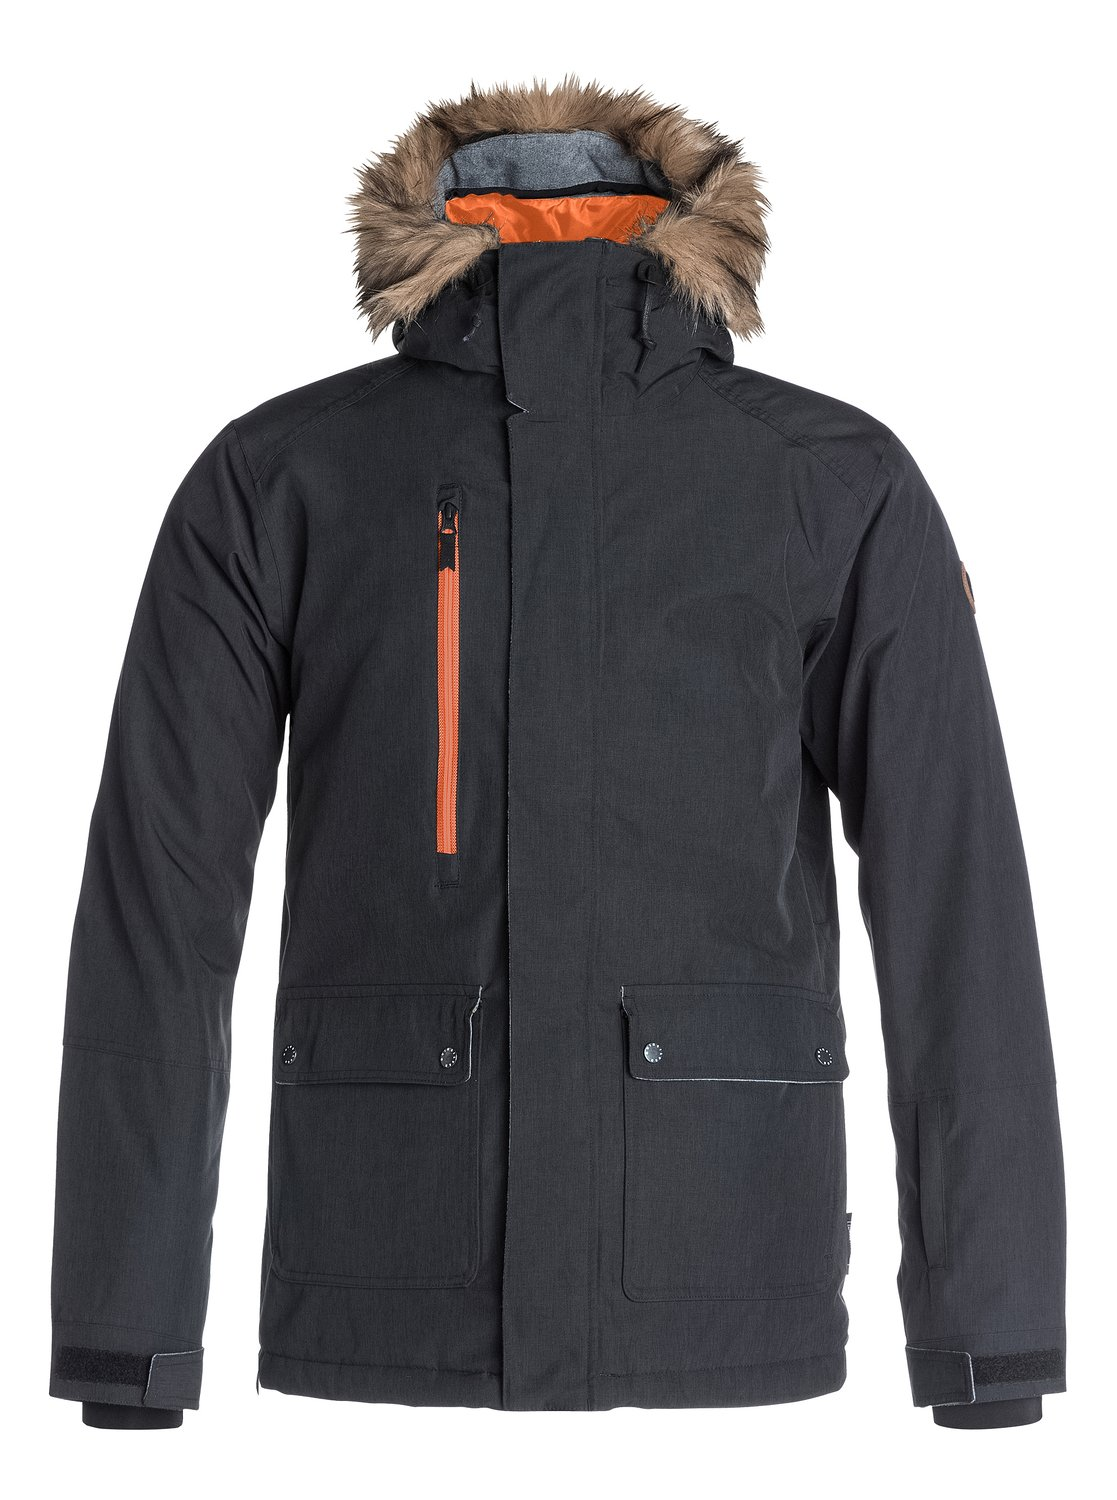 Quiksilver Selector Mountain Exclusive